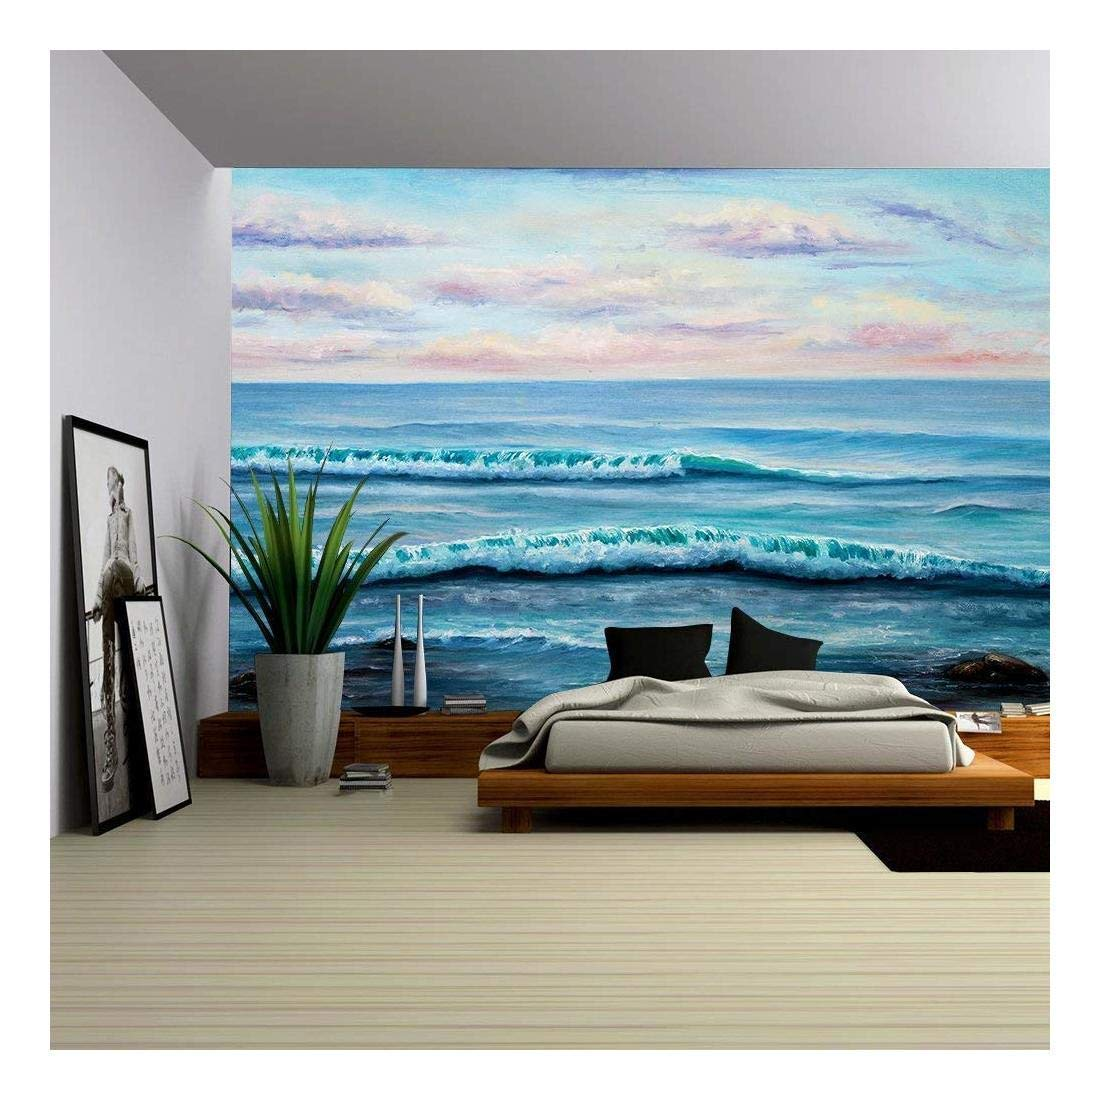 wall26 - Original Oil Painting Showing Ocean or Sea,Shore or Beach on Canvas - Removable Wall Mural | Self-adhesive Large Wallpaper - 100x144 inches